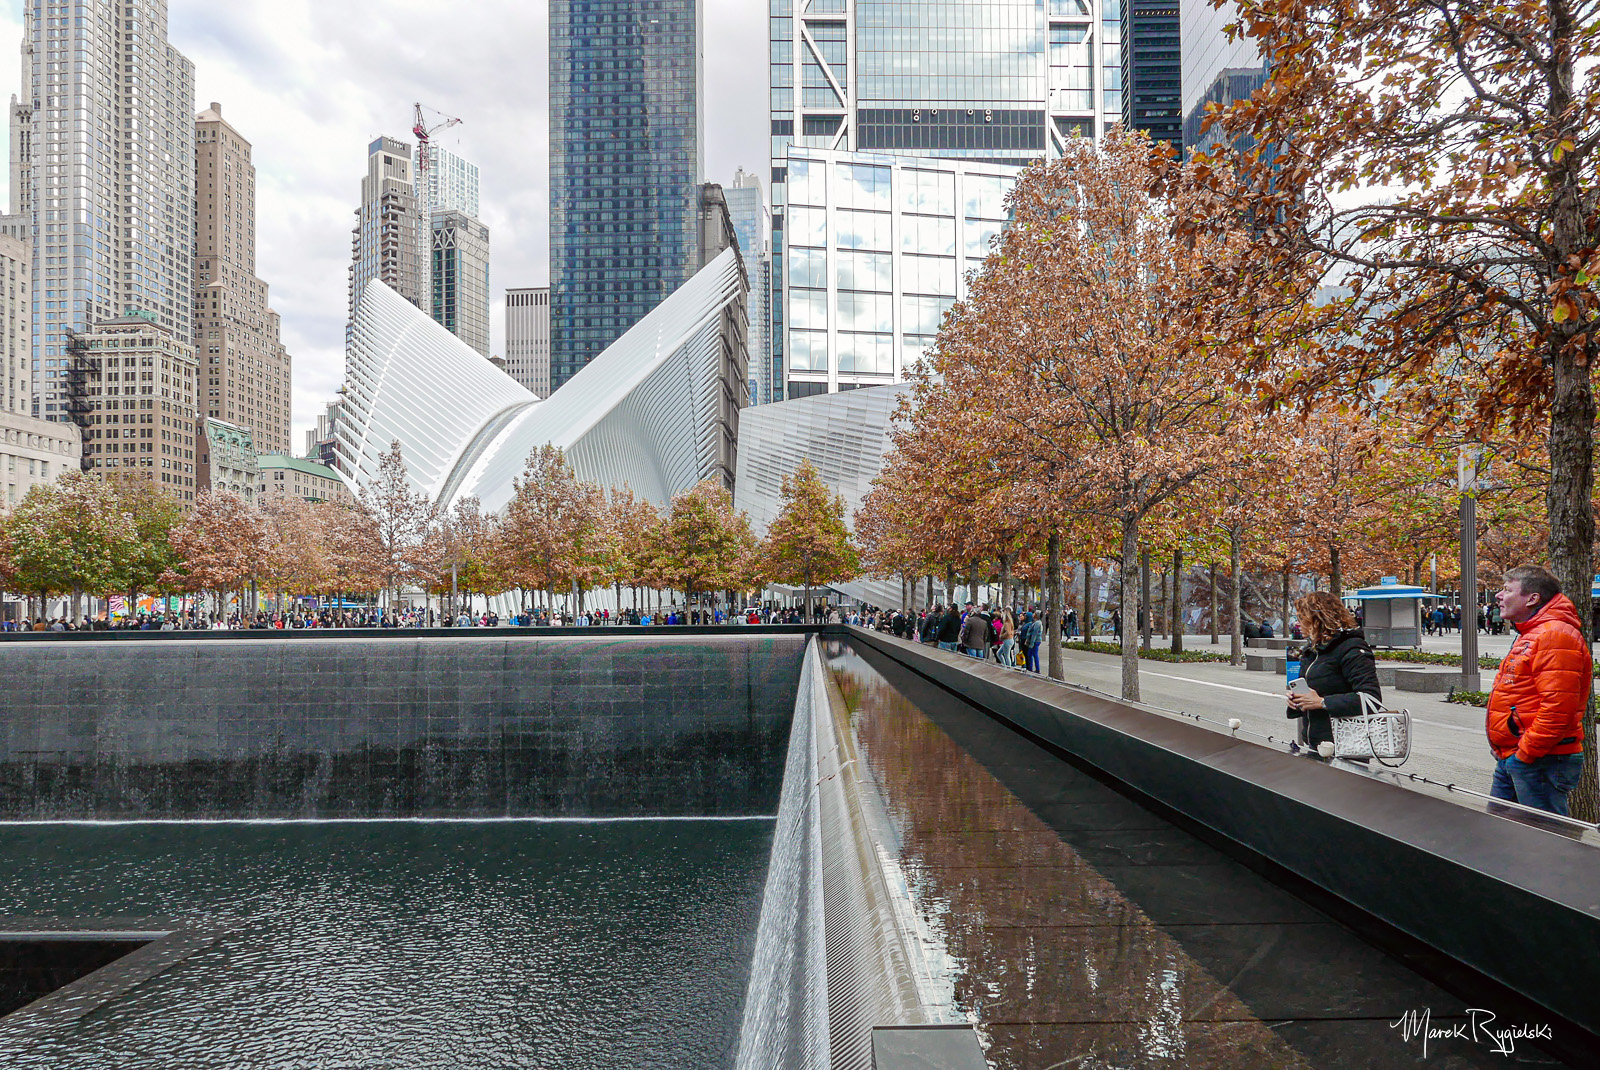 9/11 Memorial and World Trade Center.